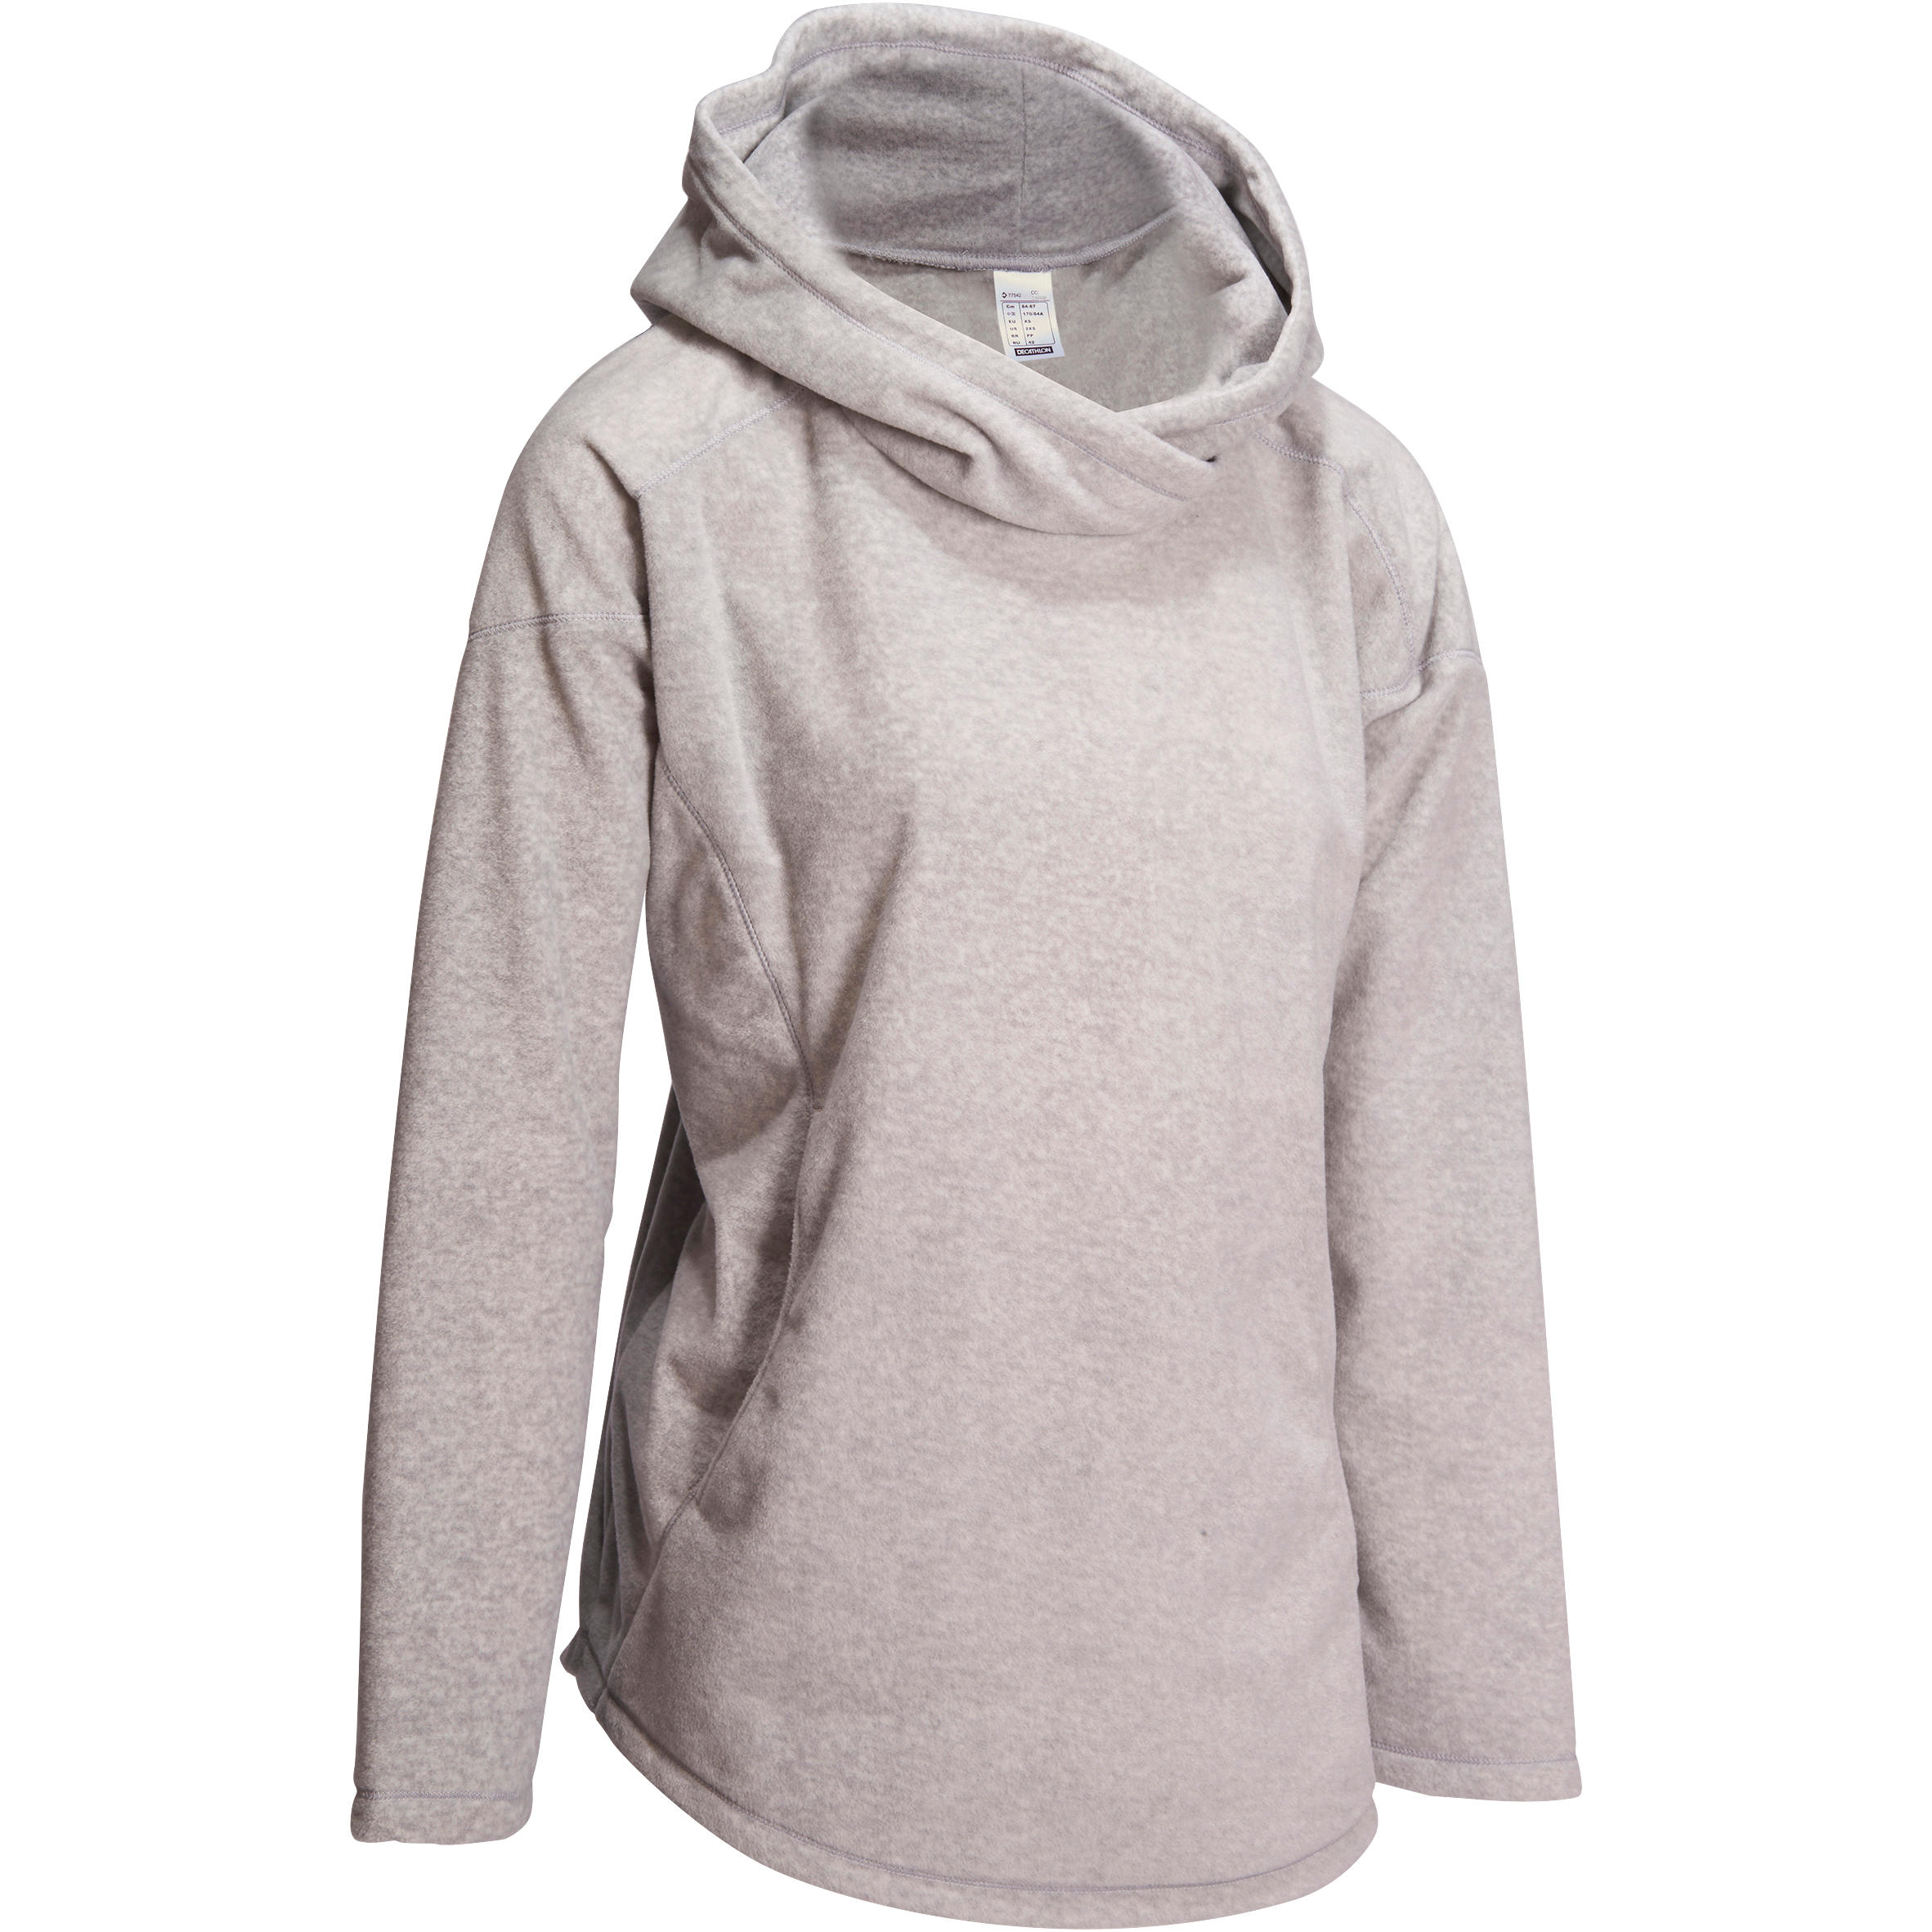 Women's Relaxation Yoga Fleece Sweatshirt - Grey